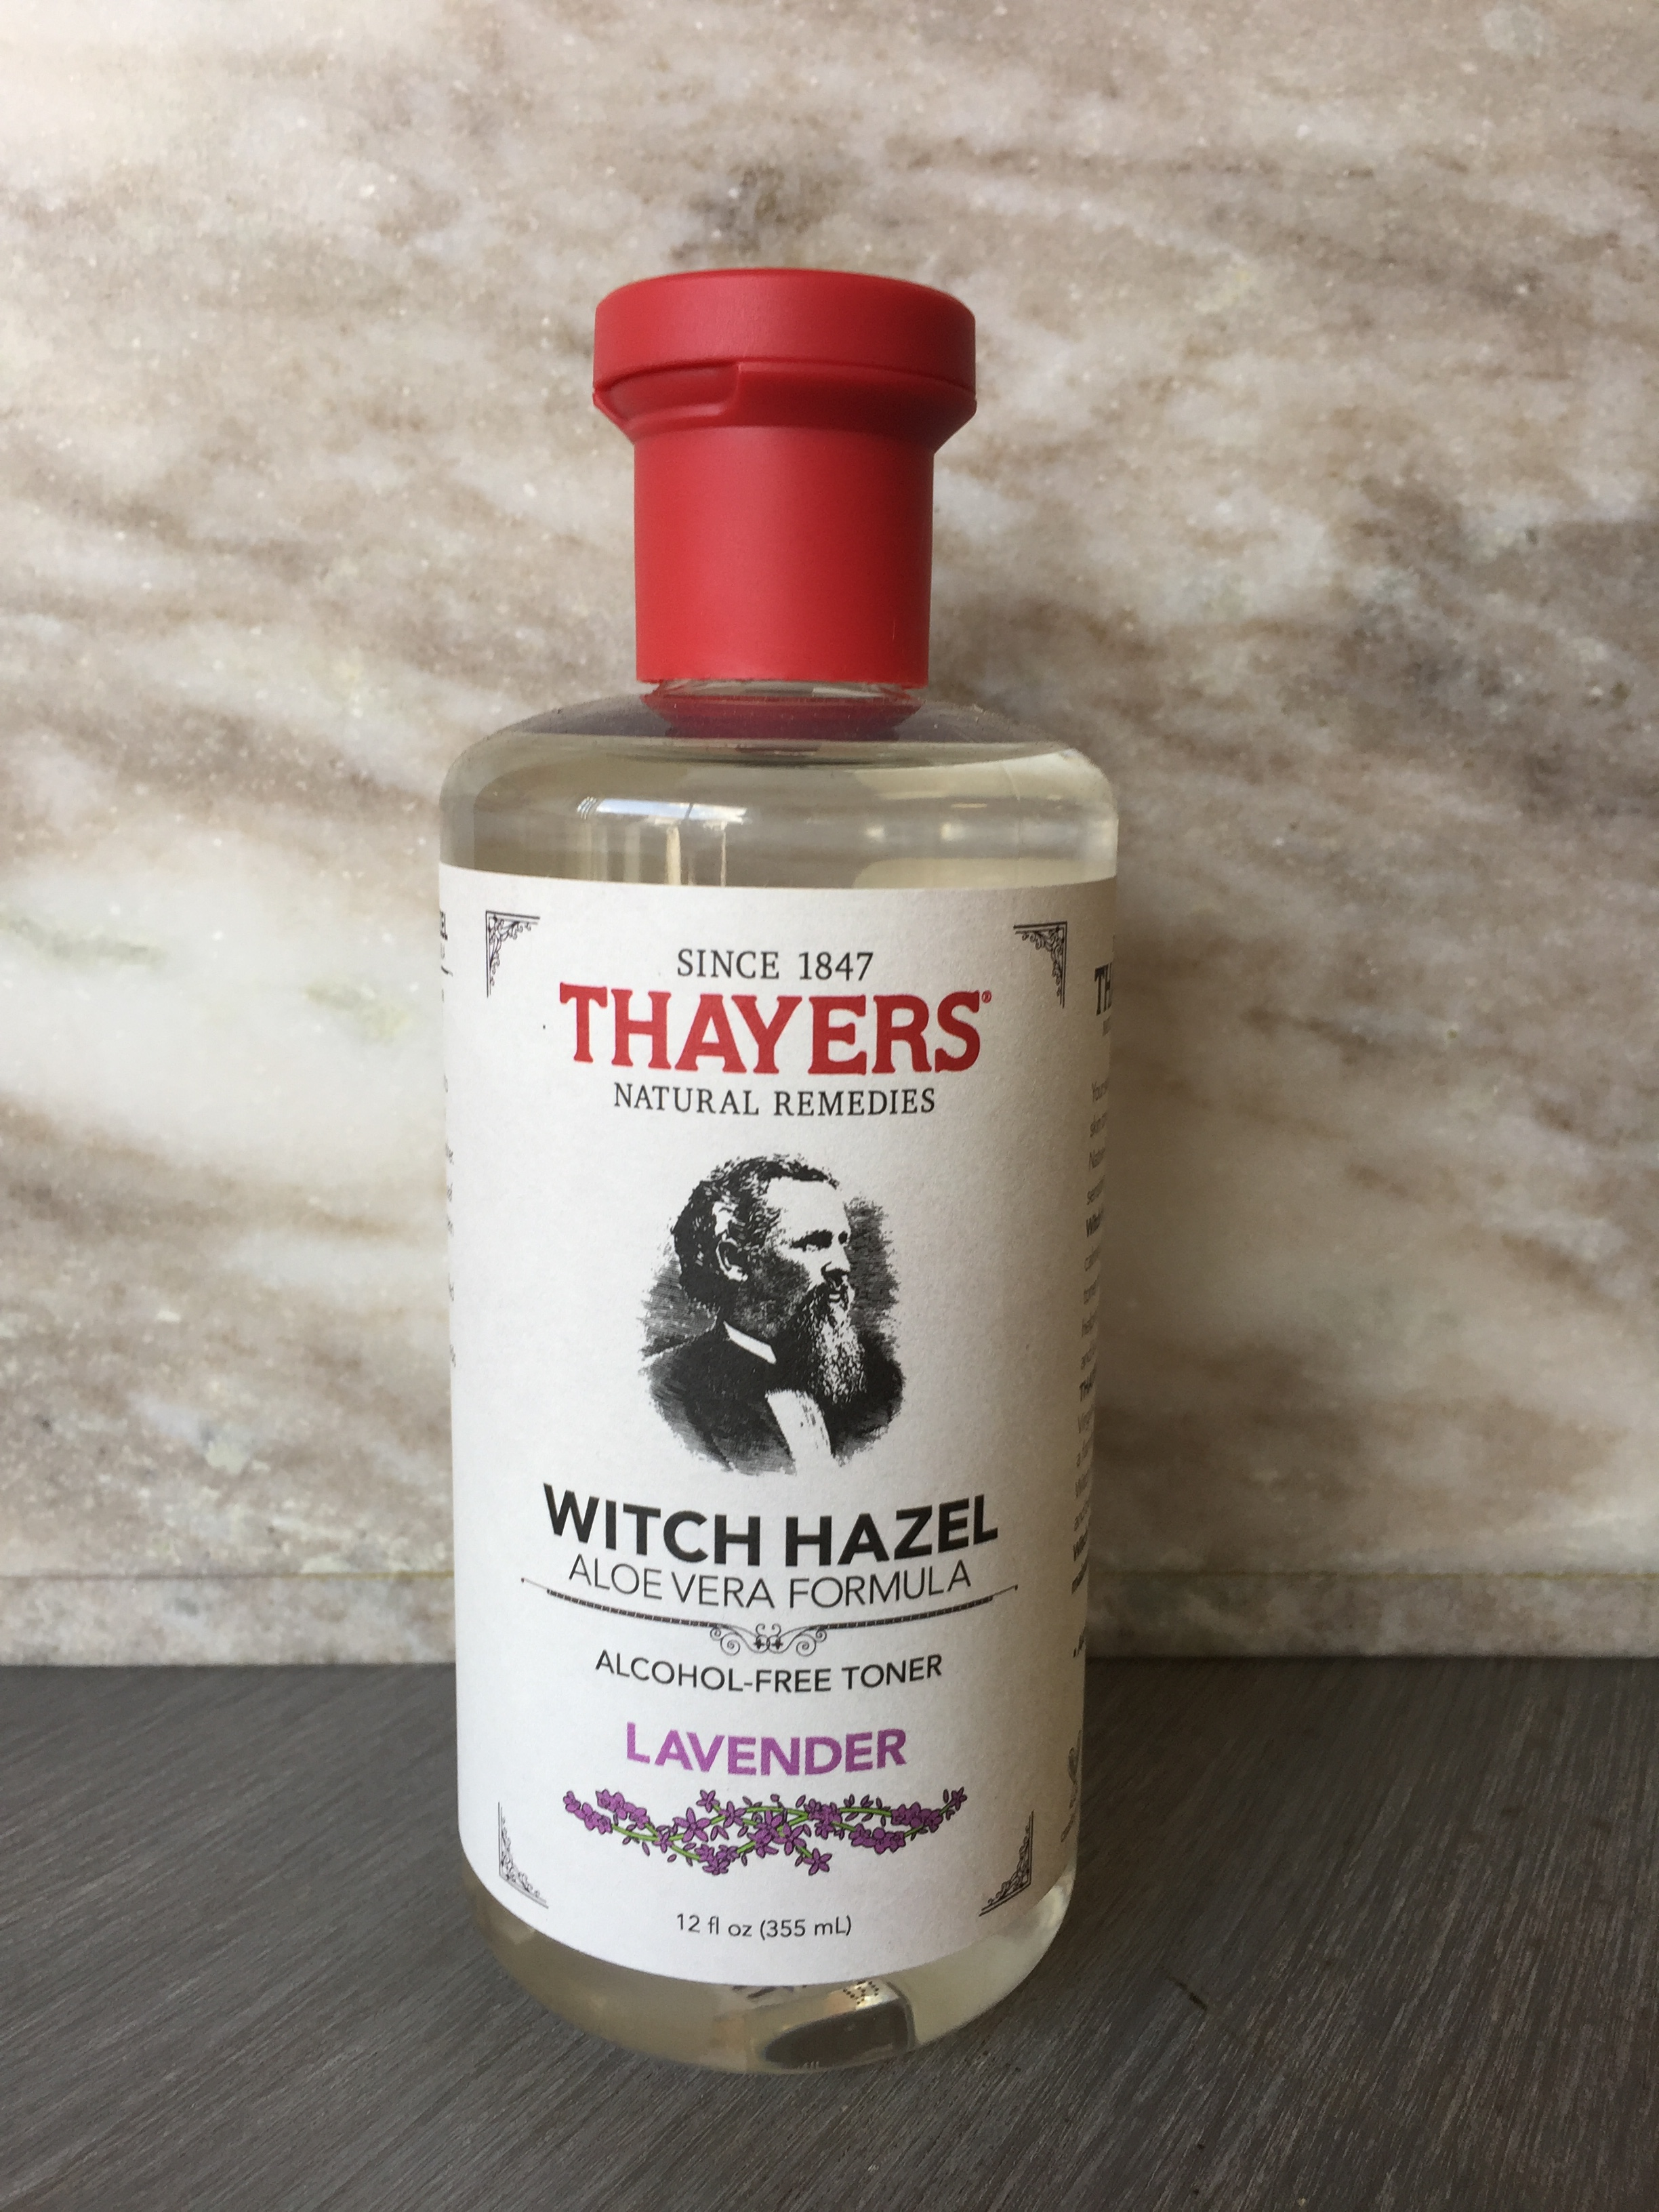 Thayer S Witch Hazel Toner Wildflower Centre For Natural Healing